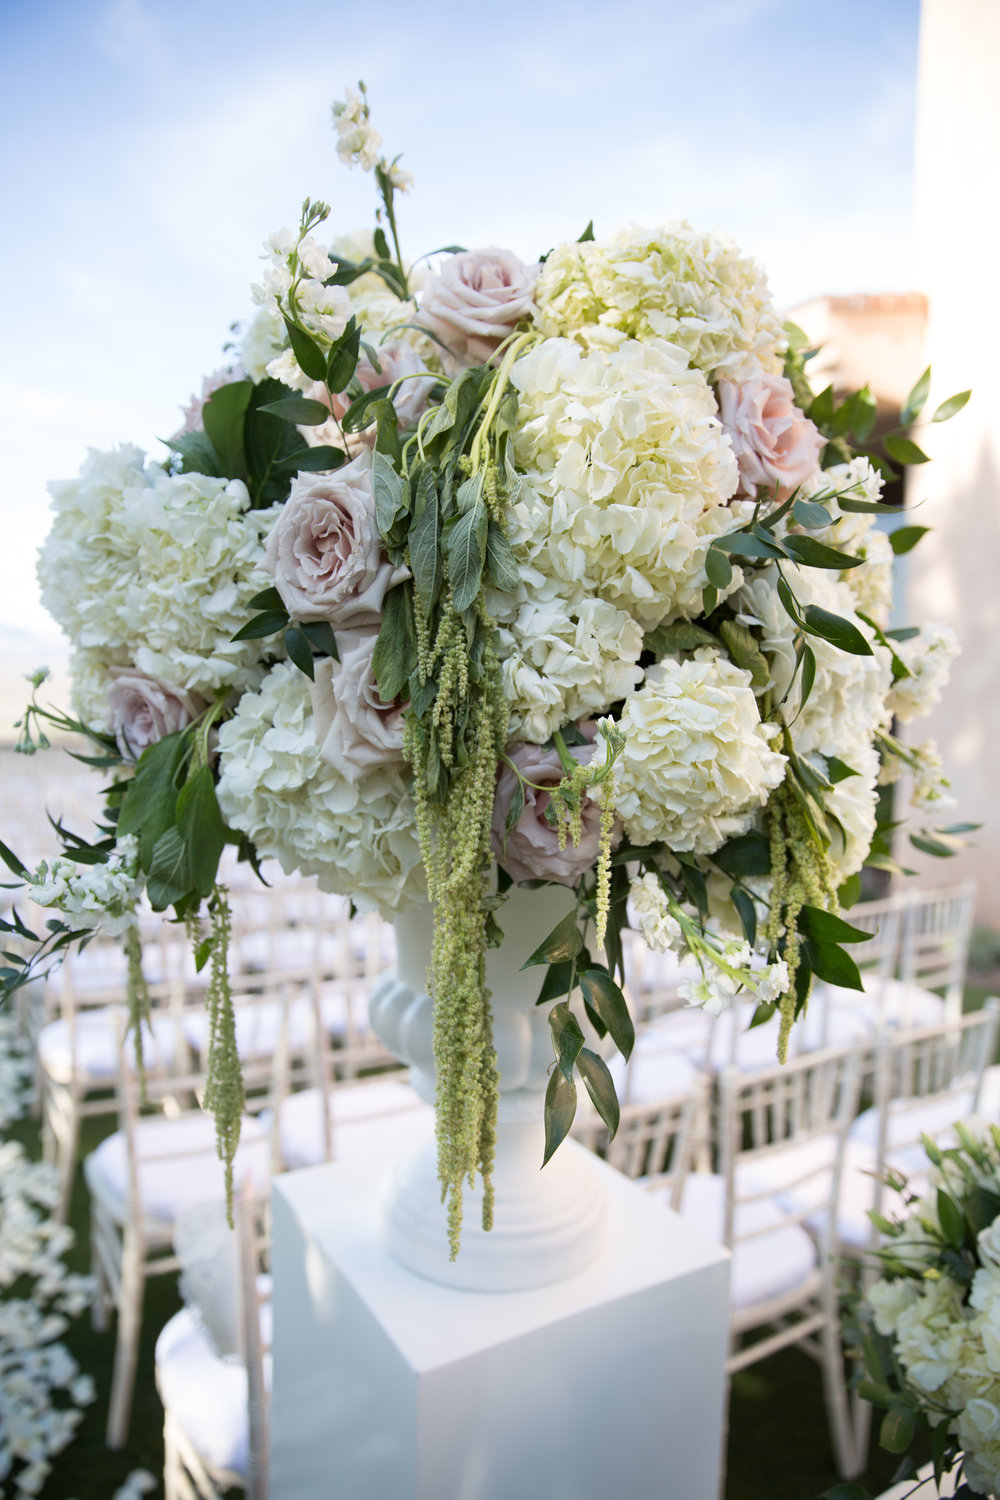 www.adnreaeppolitoevents.com  |  Luxury Destination Wedding Planning and Event Design by  Andrea Eppolito Events  · Photos by  Stephen Salazar  · Flowers by  Naakiti Floral  ·  Big ceremony floral piece.